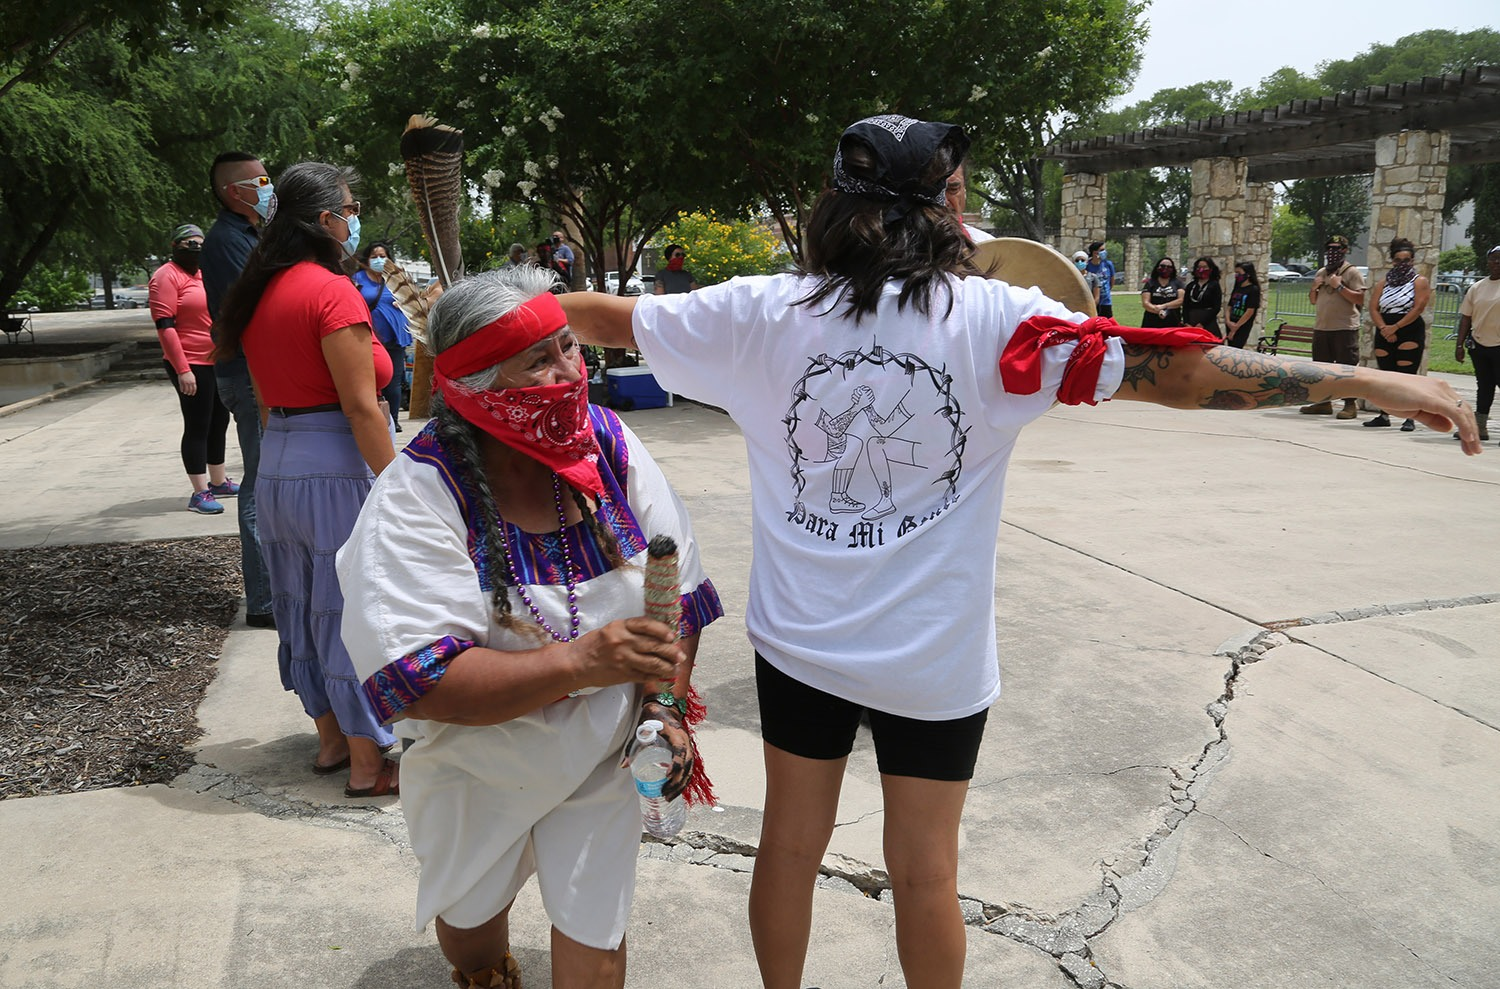 Diana Uriegas performs a safe cleaning prayer on an advocates for the removal of the Christopher Columbus statue during a protest Saturday, June 27, 2020, at Columbus Park, 200 Columbus St. Photo by Ben Olivo | Heron